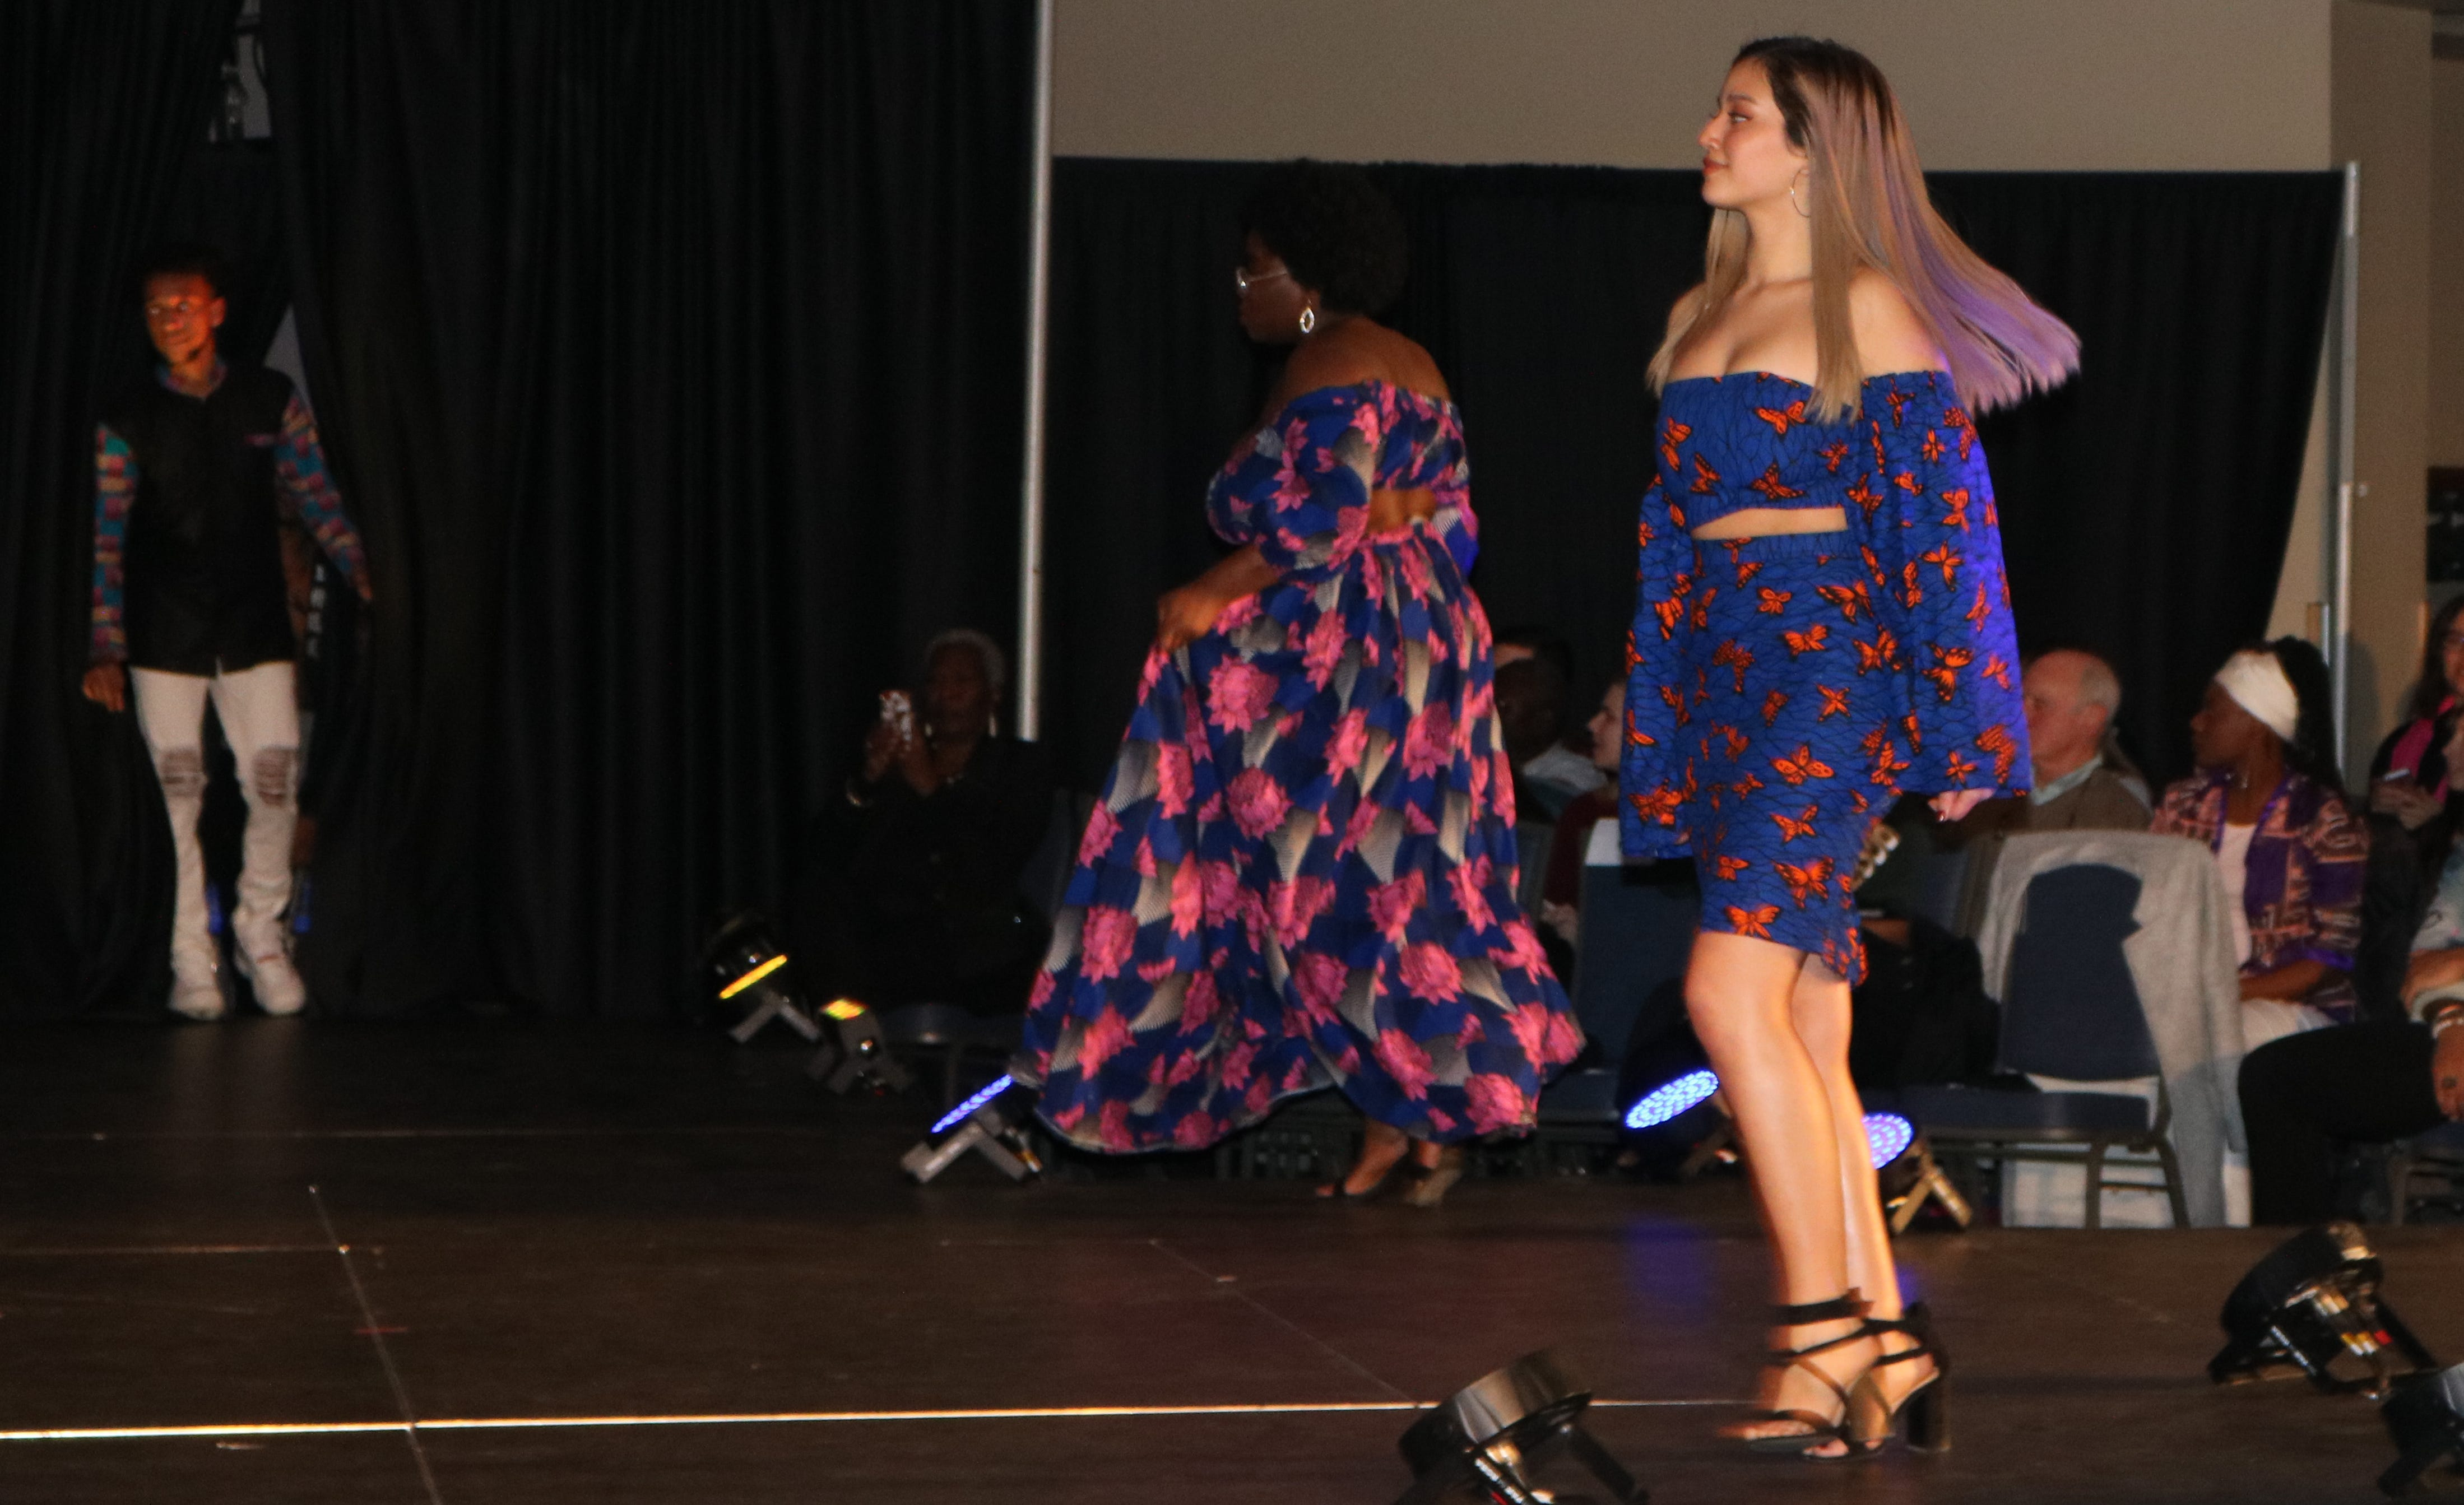 """African prints cut for contemporary lounge and club wear got shouts from the crowd at the 2019 fashion show, """"Paint it Black,"""" at the Davis Center on Saturday, Feb. 23, 2019."""